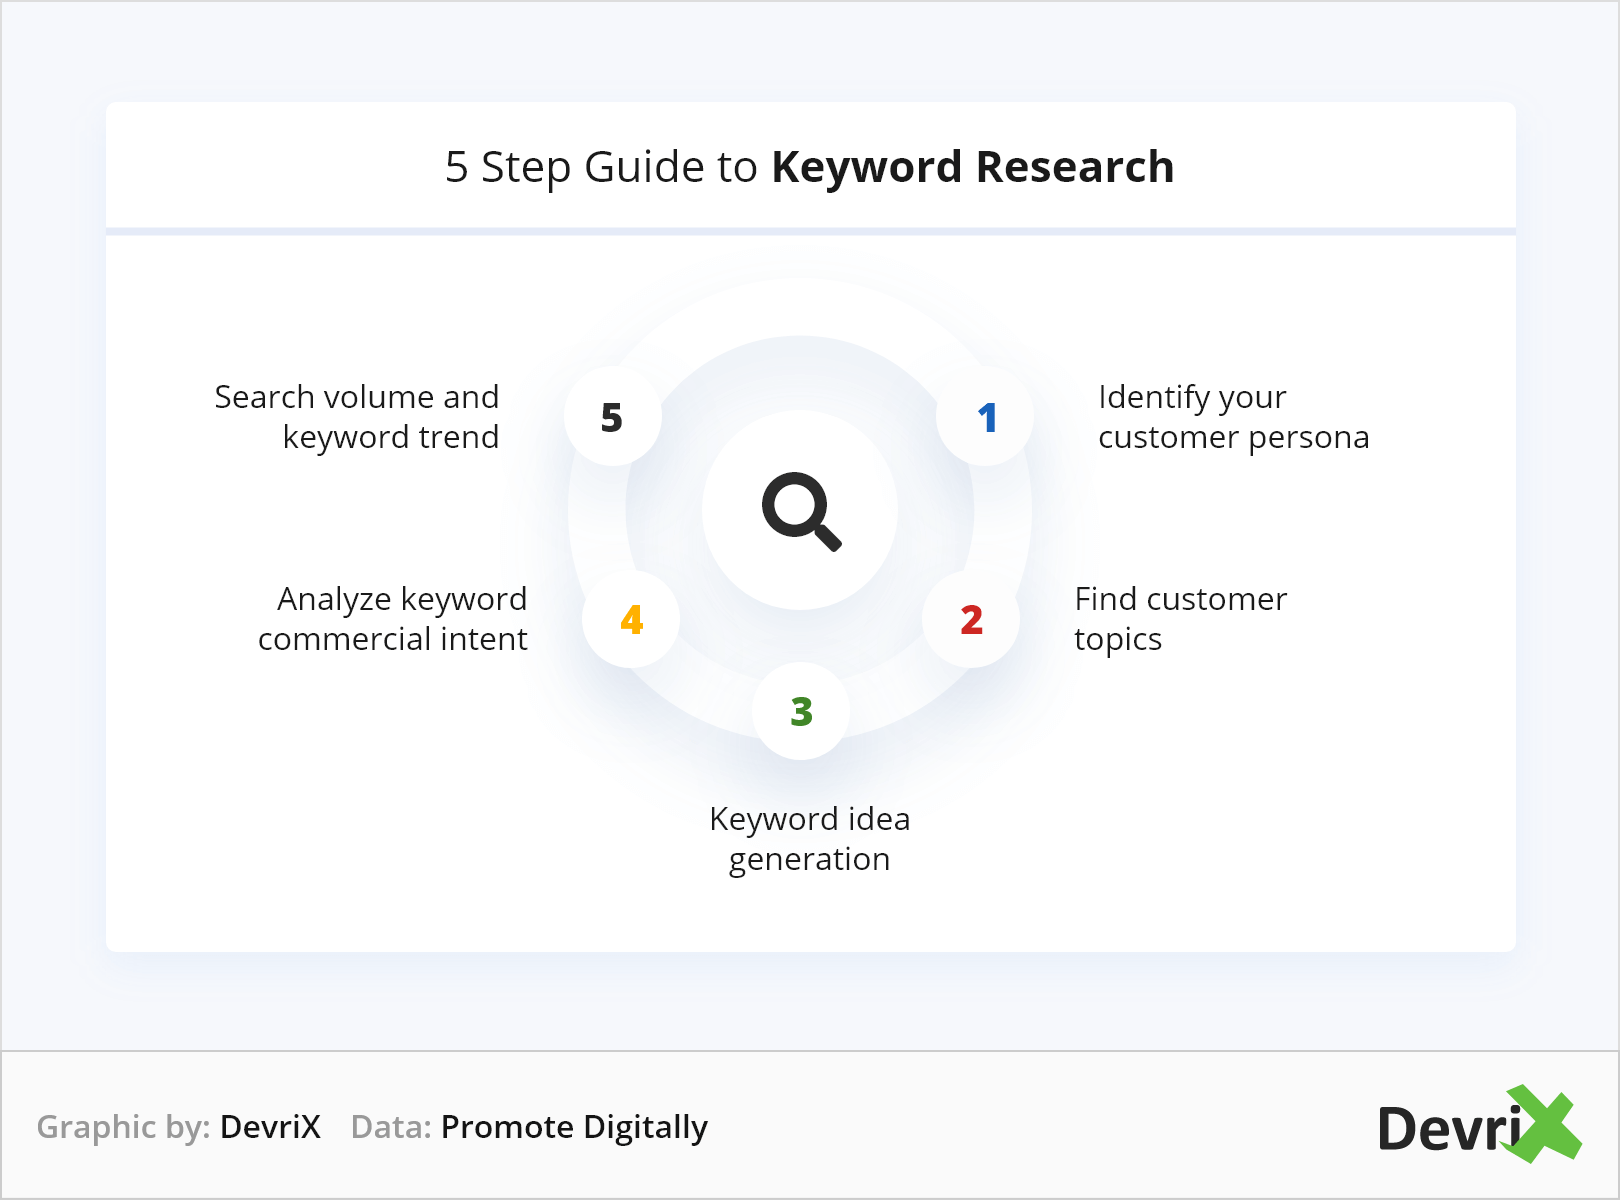 5 Step Guide to Keyword Research